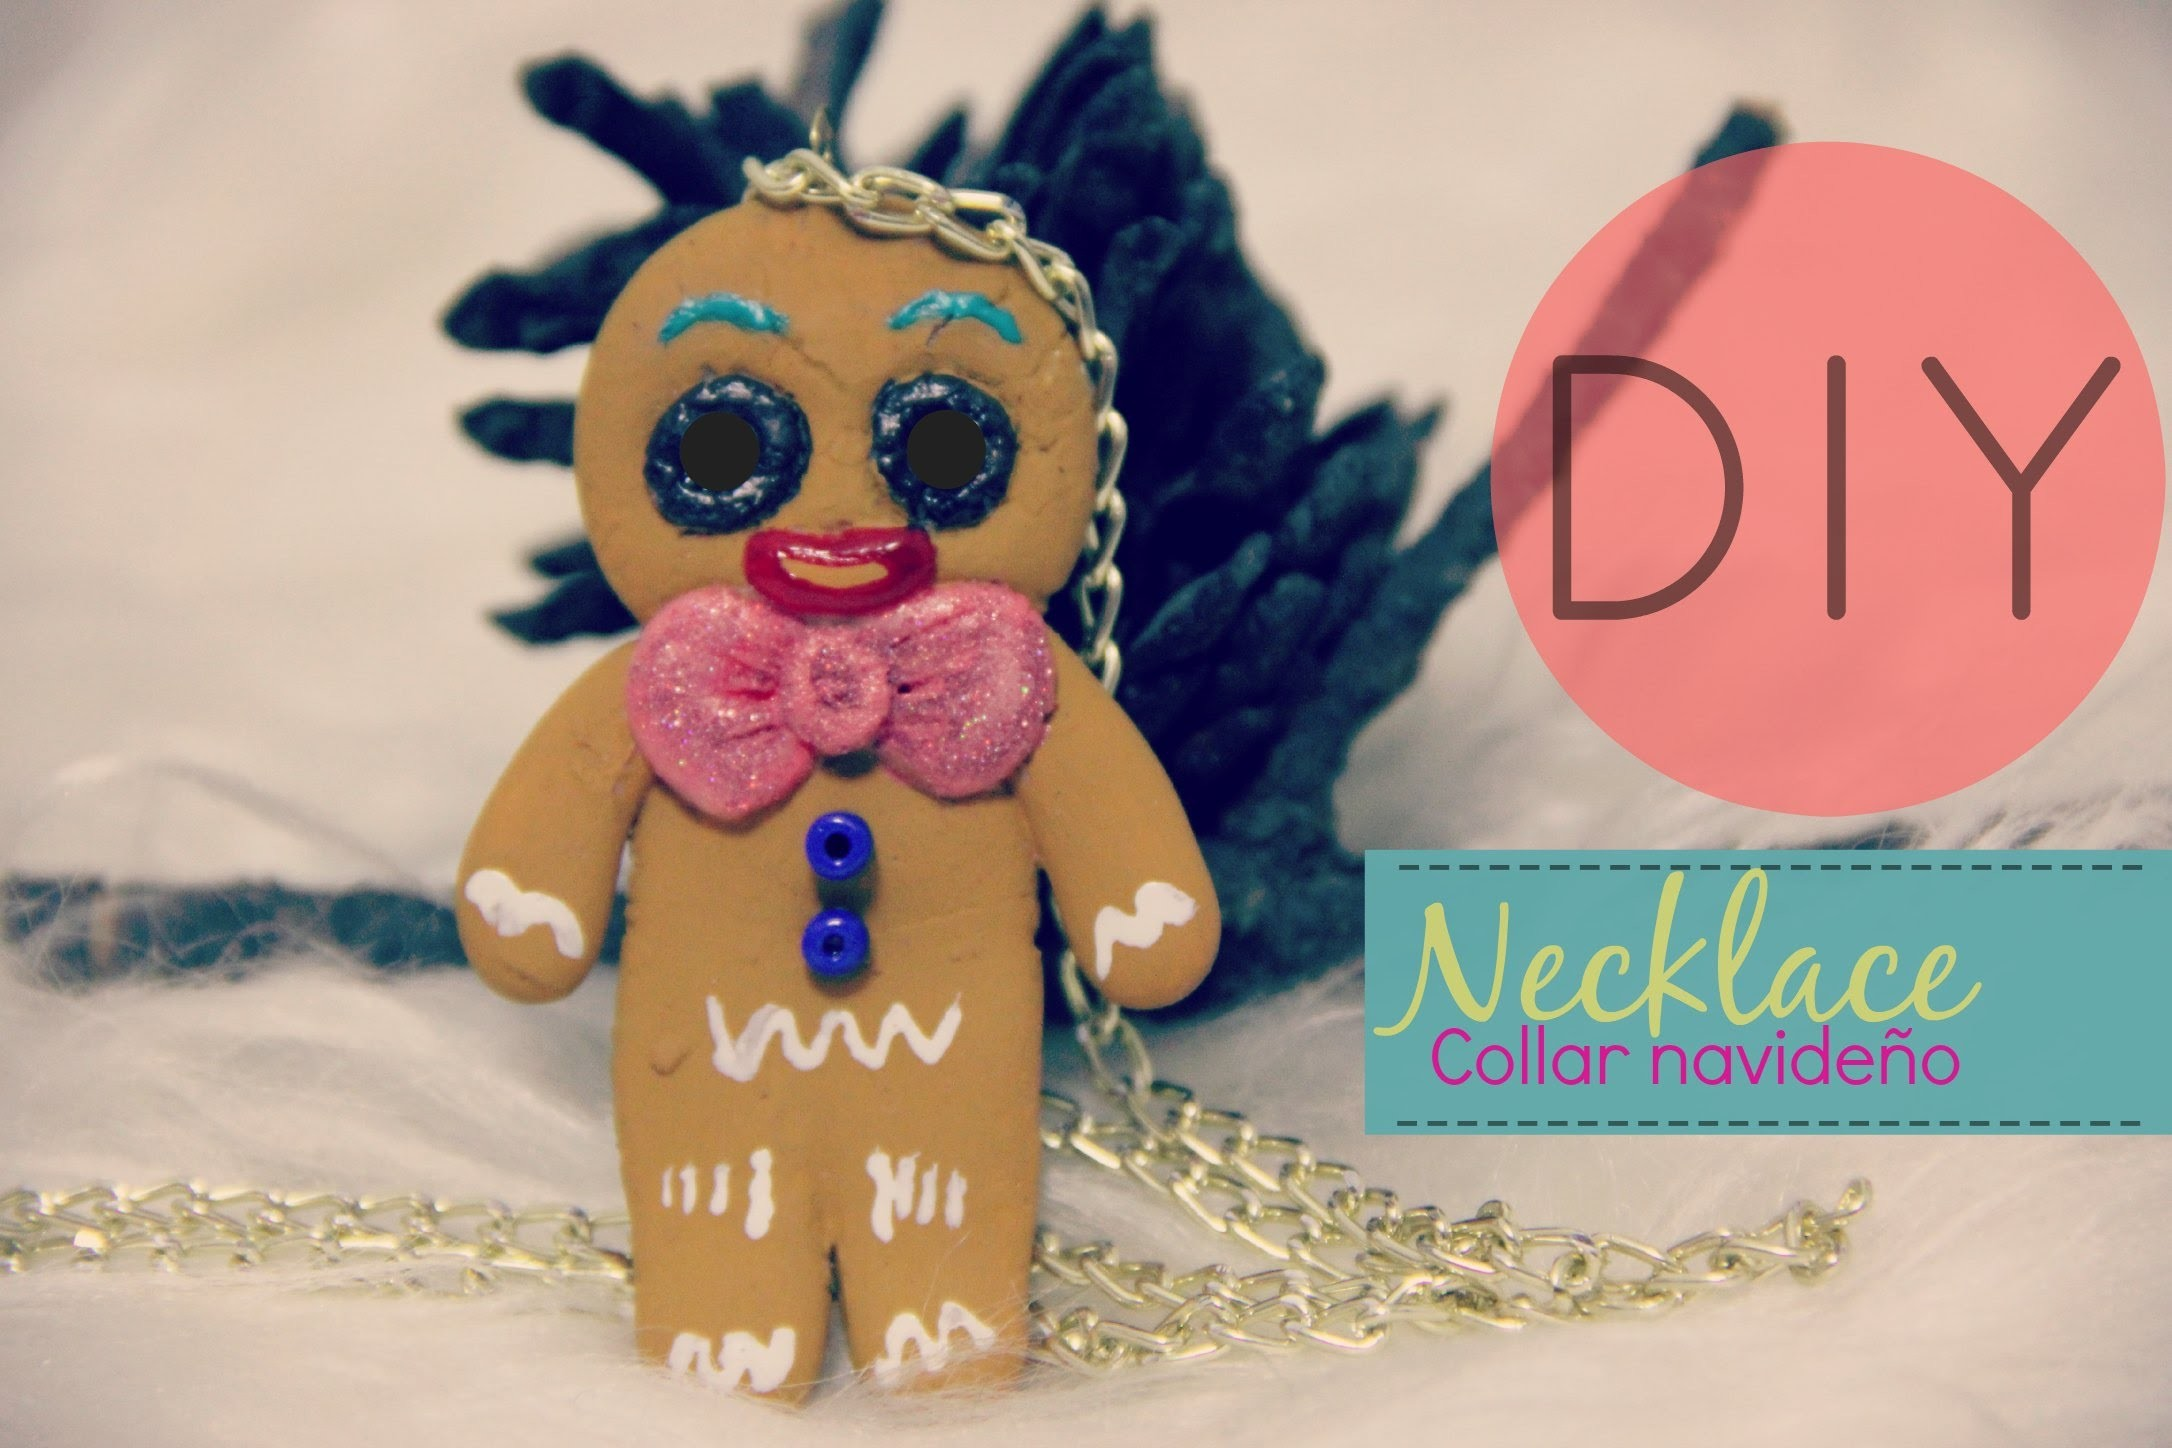 DIY Necklace Collar Navideño